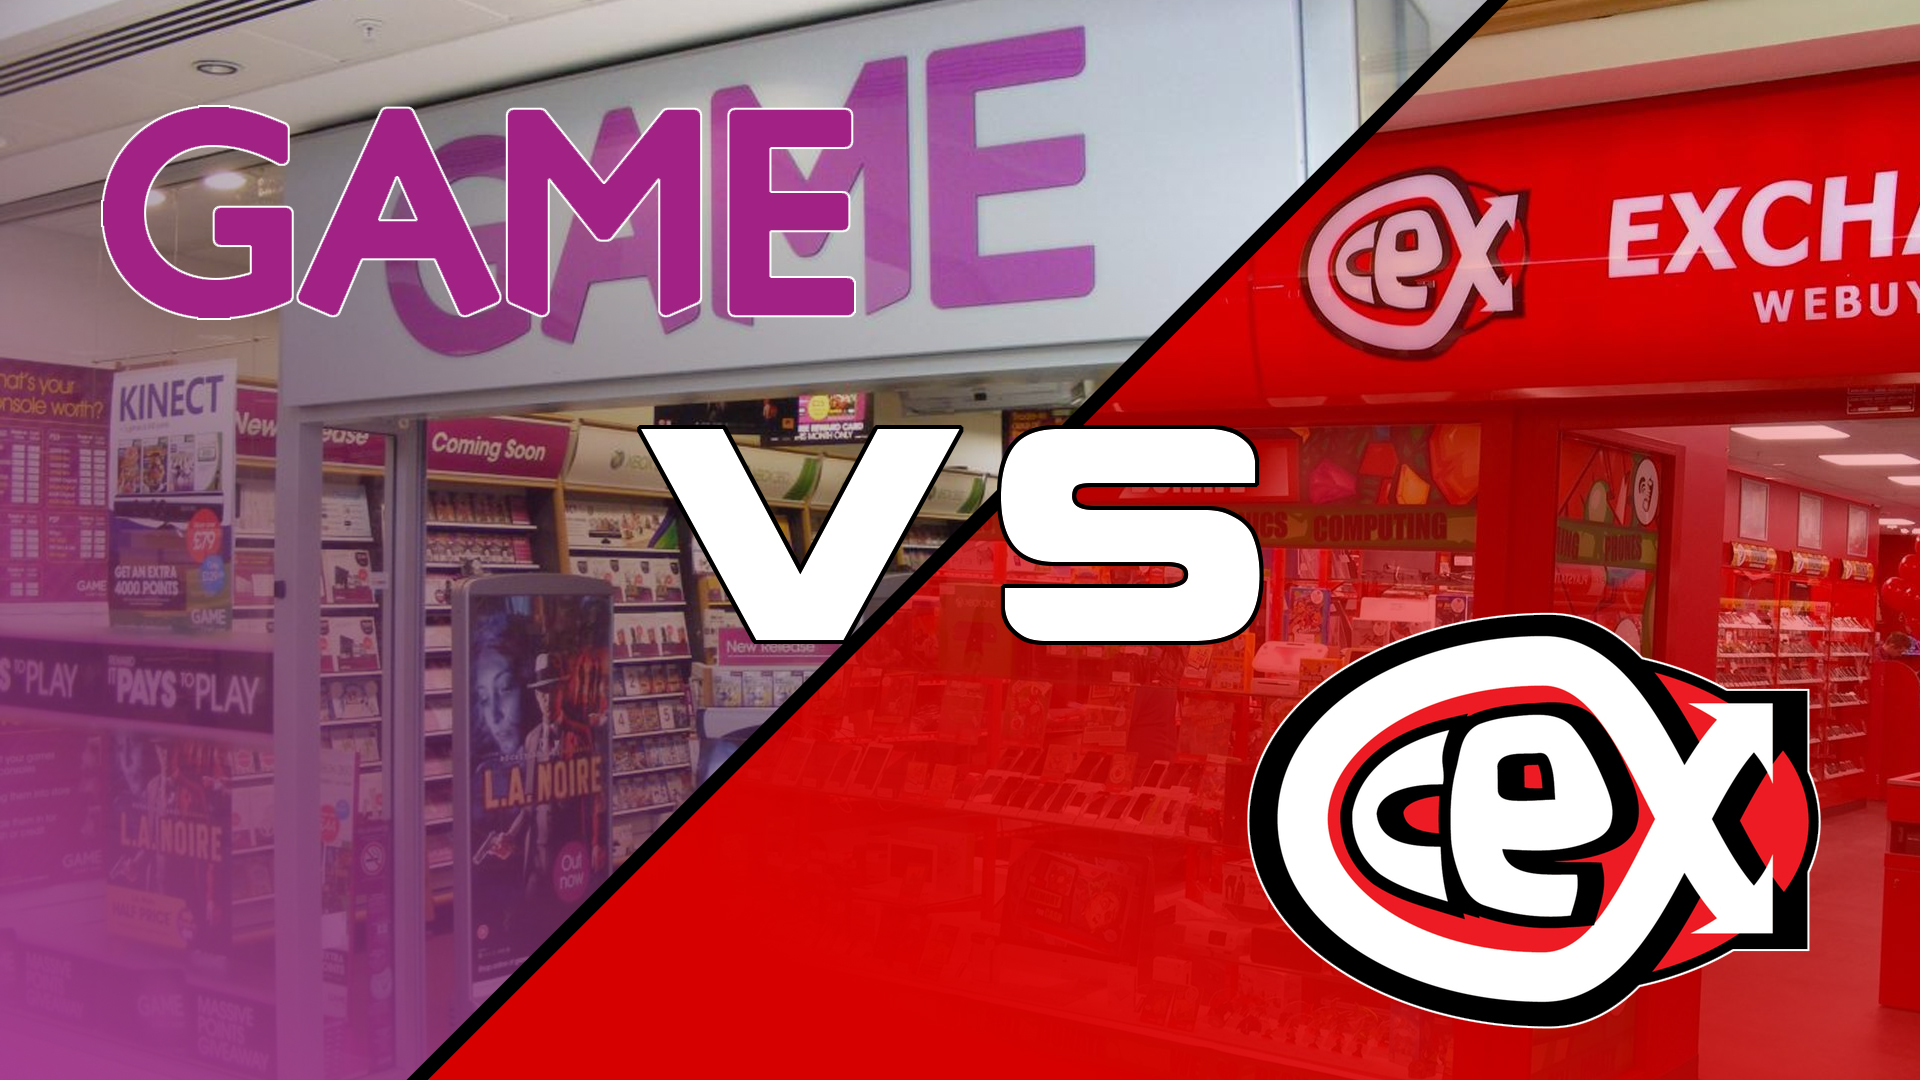 Visit a Game or CEX Store to Repair Discs.